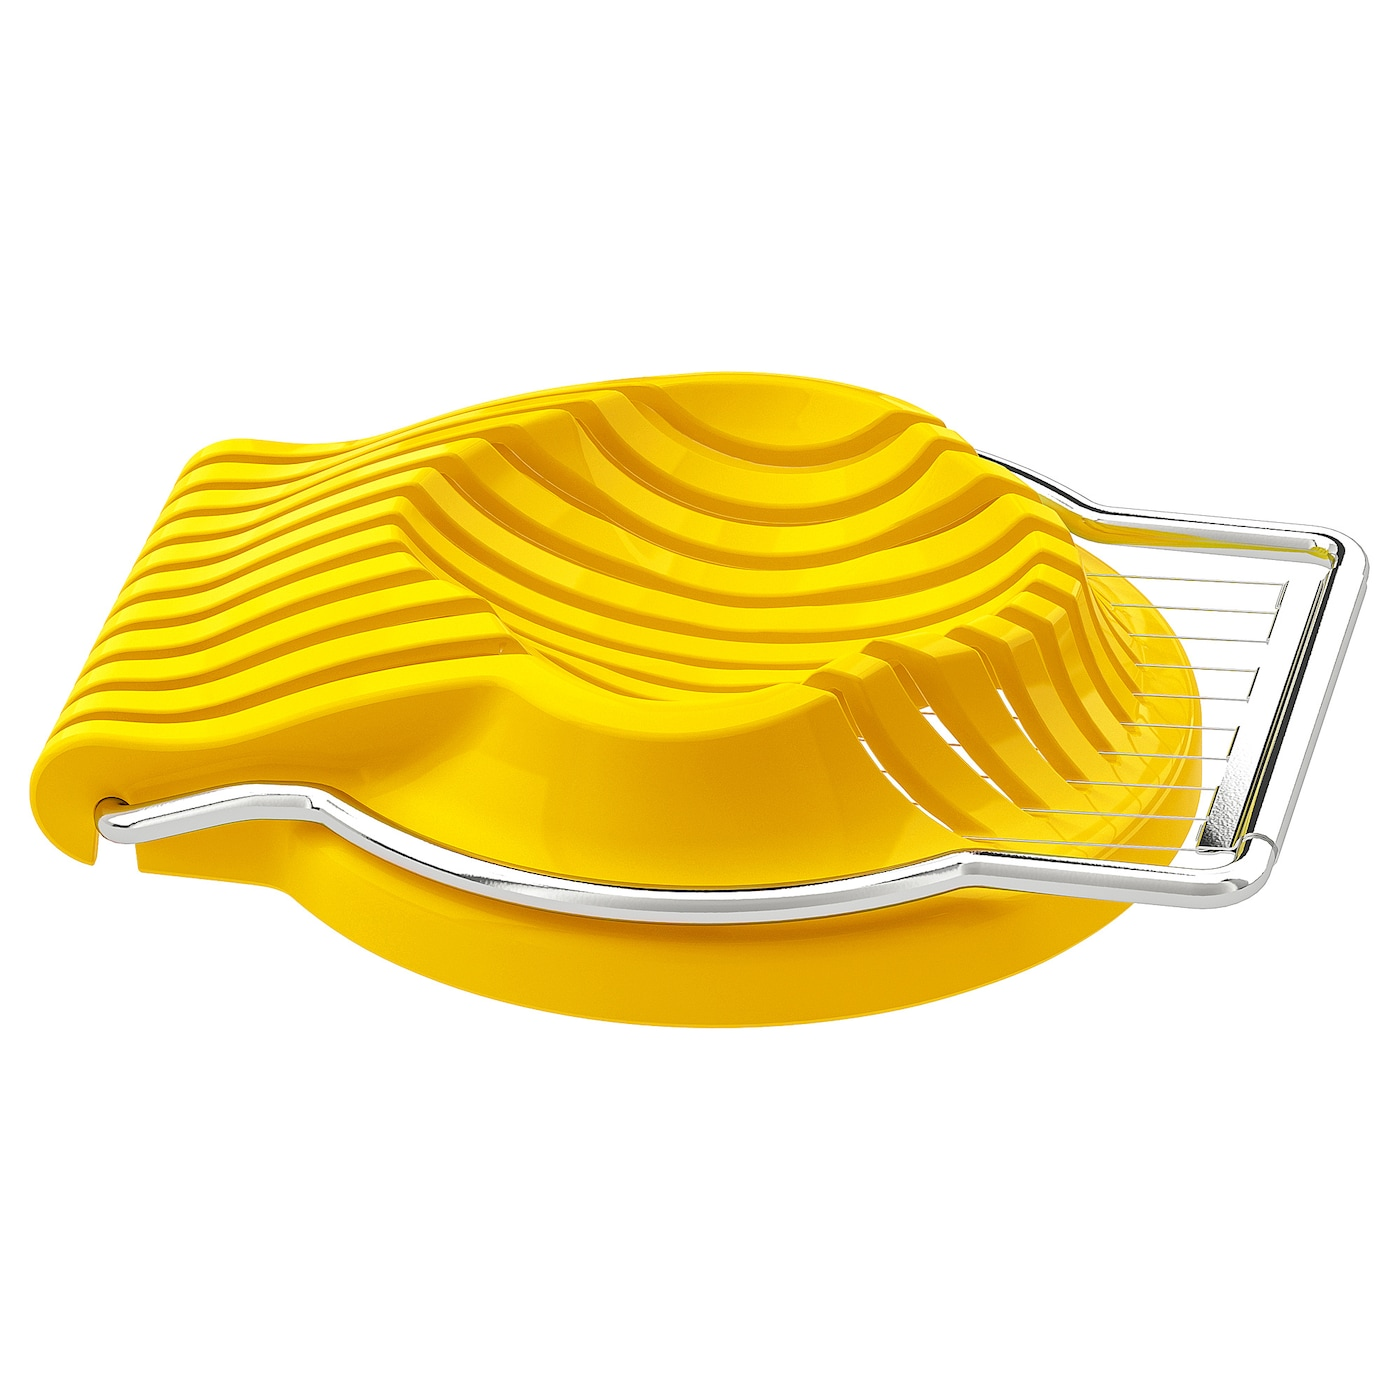 IKEA SLÄT egg slicer The egg slicer is easy to clean as the steel frame is removable.